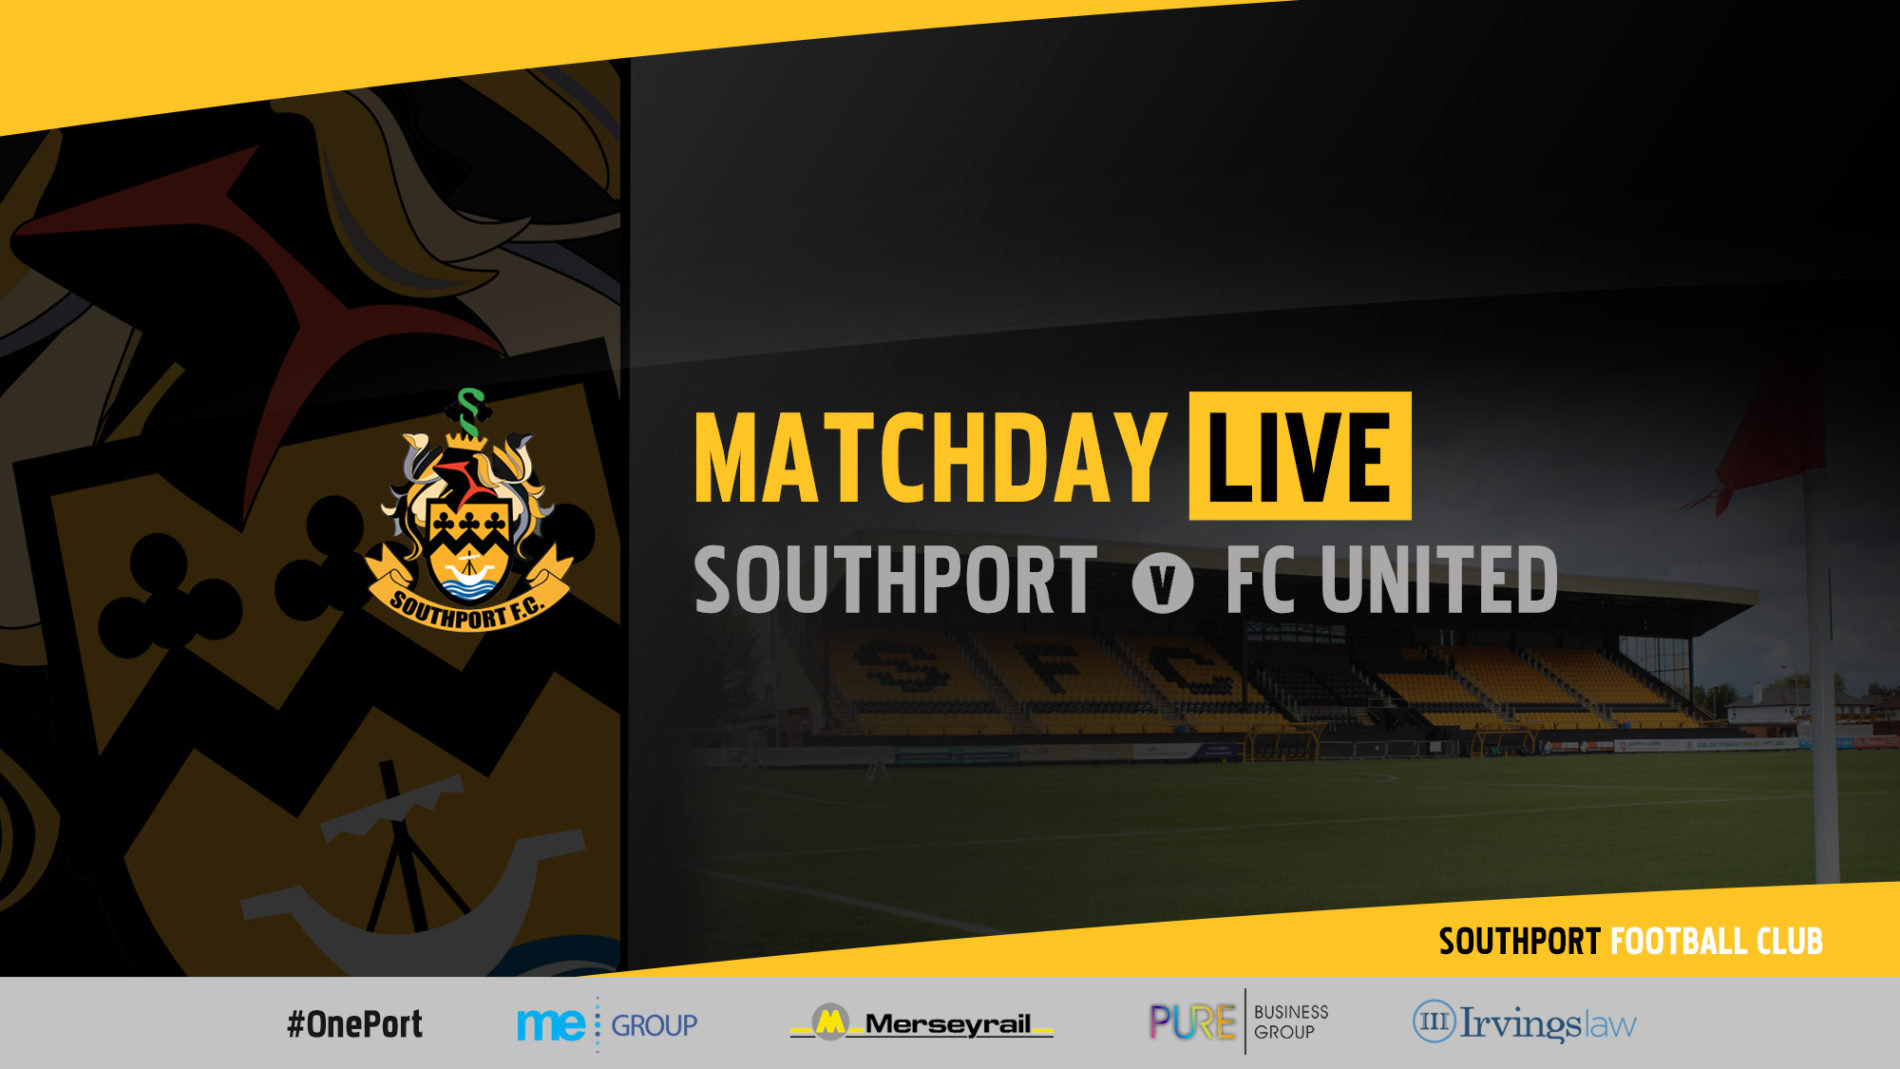 MATCHDAY LIVE | Southport vs FC United of Manchester